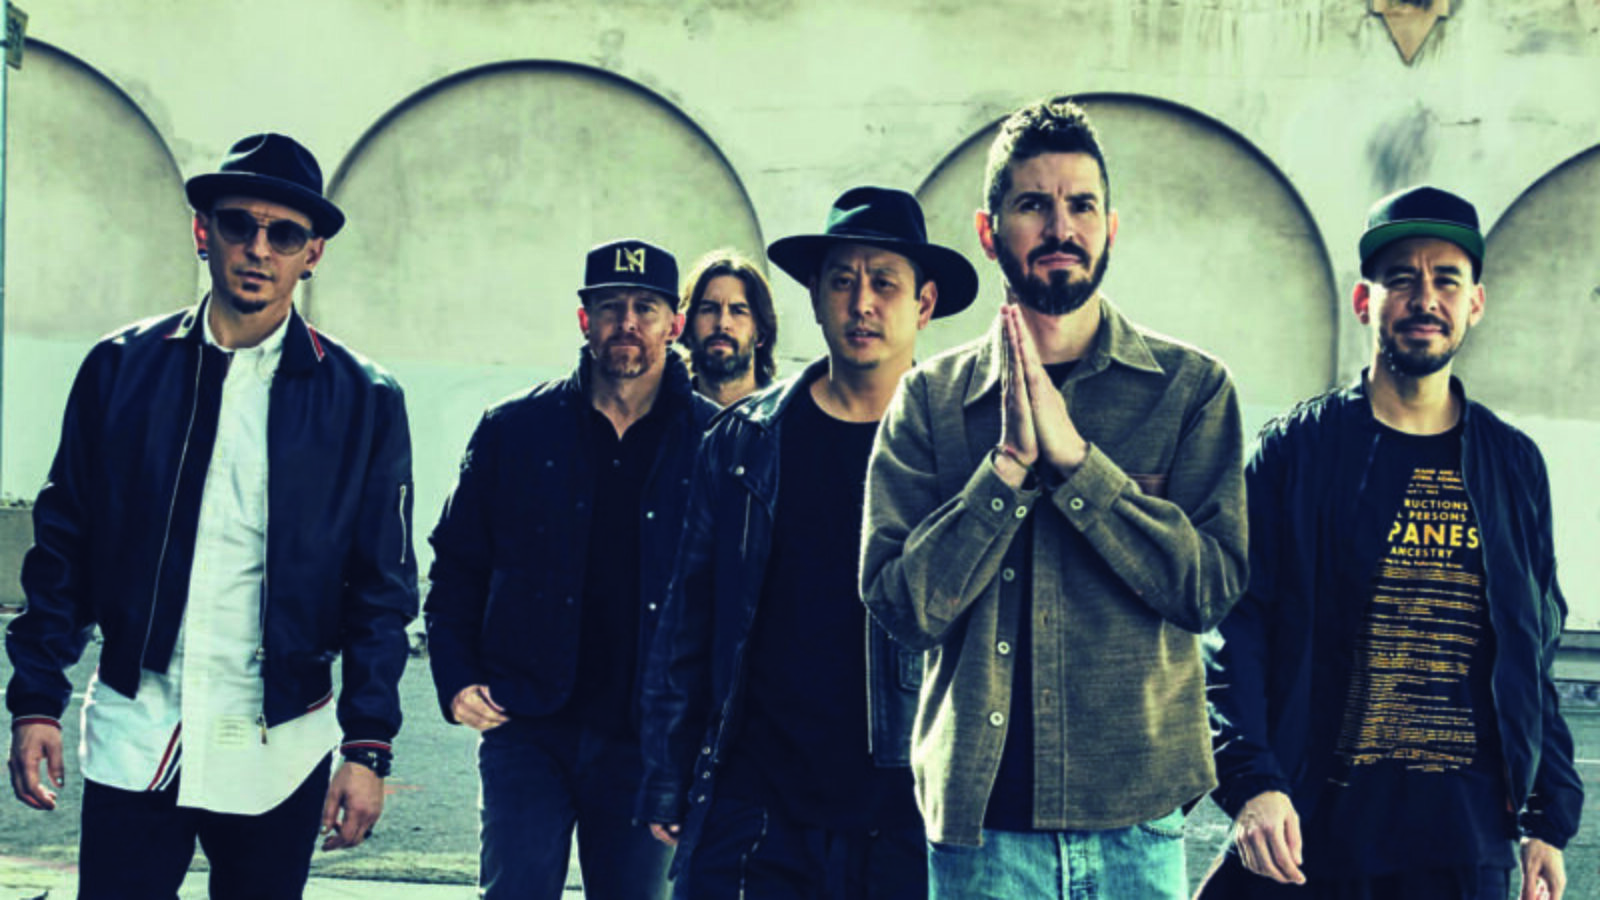 Linkin_Park_New_PRess_Picture_2017_2-scaled-800x457-1